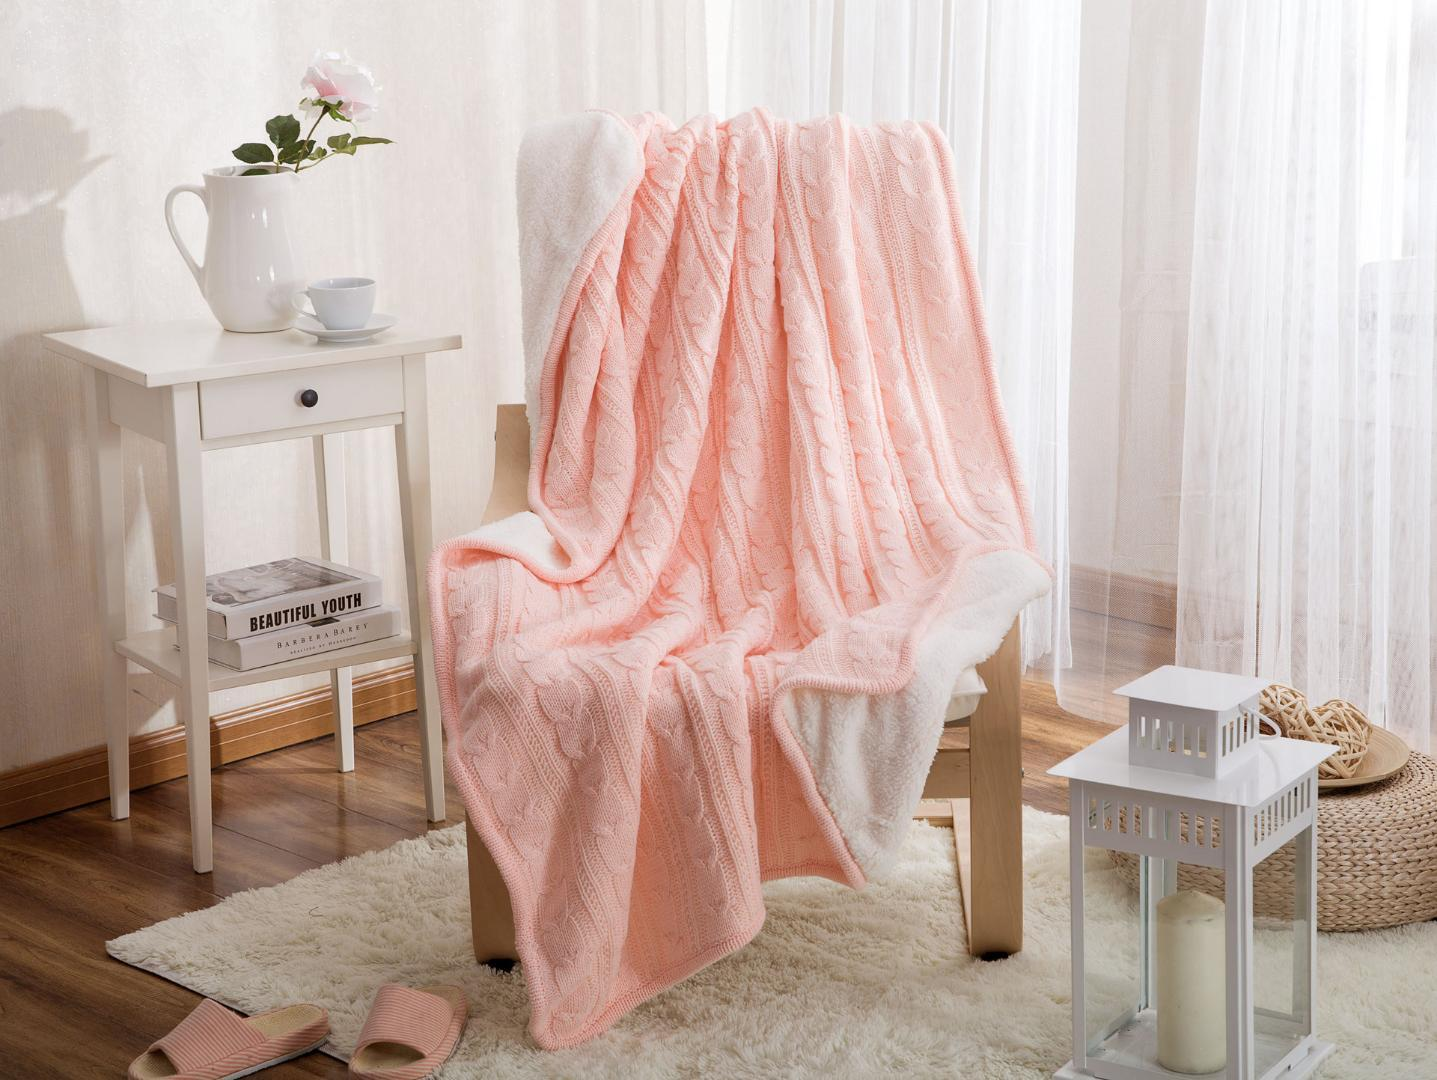 Beau Pink Knitted Throw Blanket Thick Soft Warm Coral Sherpa Blanket Travel Sofa  Solid Color Fleece Blankets Bed Soft Fluffy Cobertor Discount Blankets And  ...